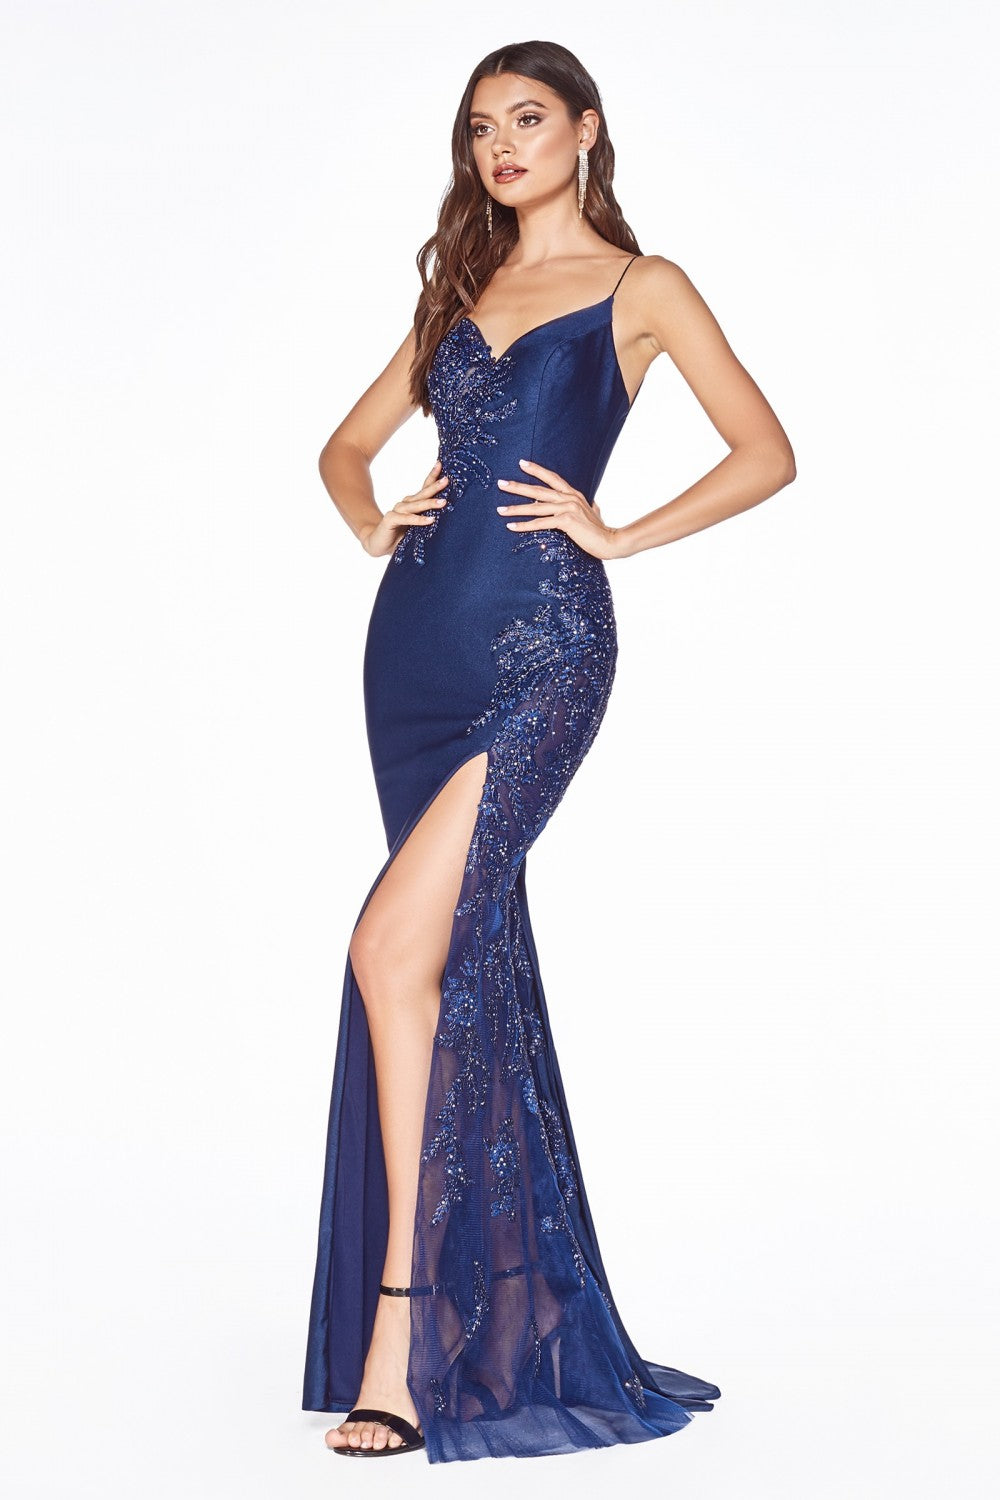 Cinderella Divine Chart I CD CM311 - Fit & Flare Prom Gown with Lace Covered Cut Outs Corset Back & Leg Slit - Diggz Prom